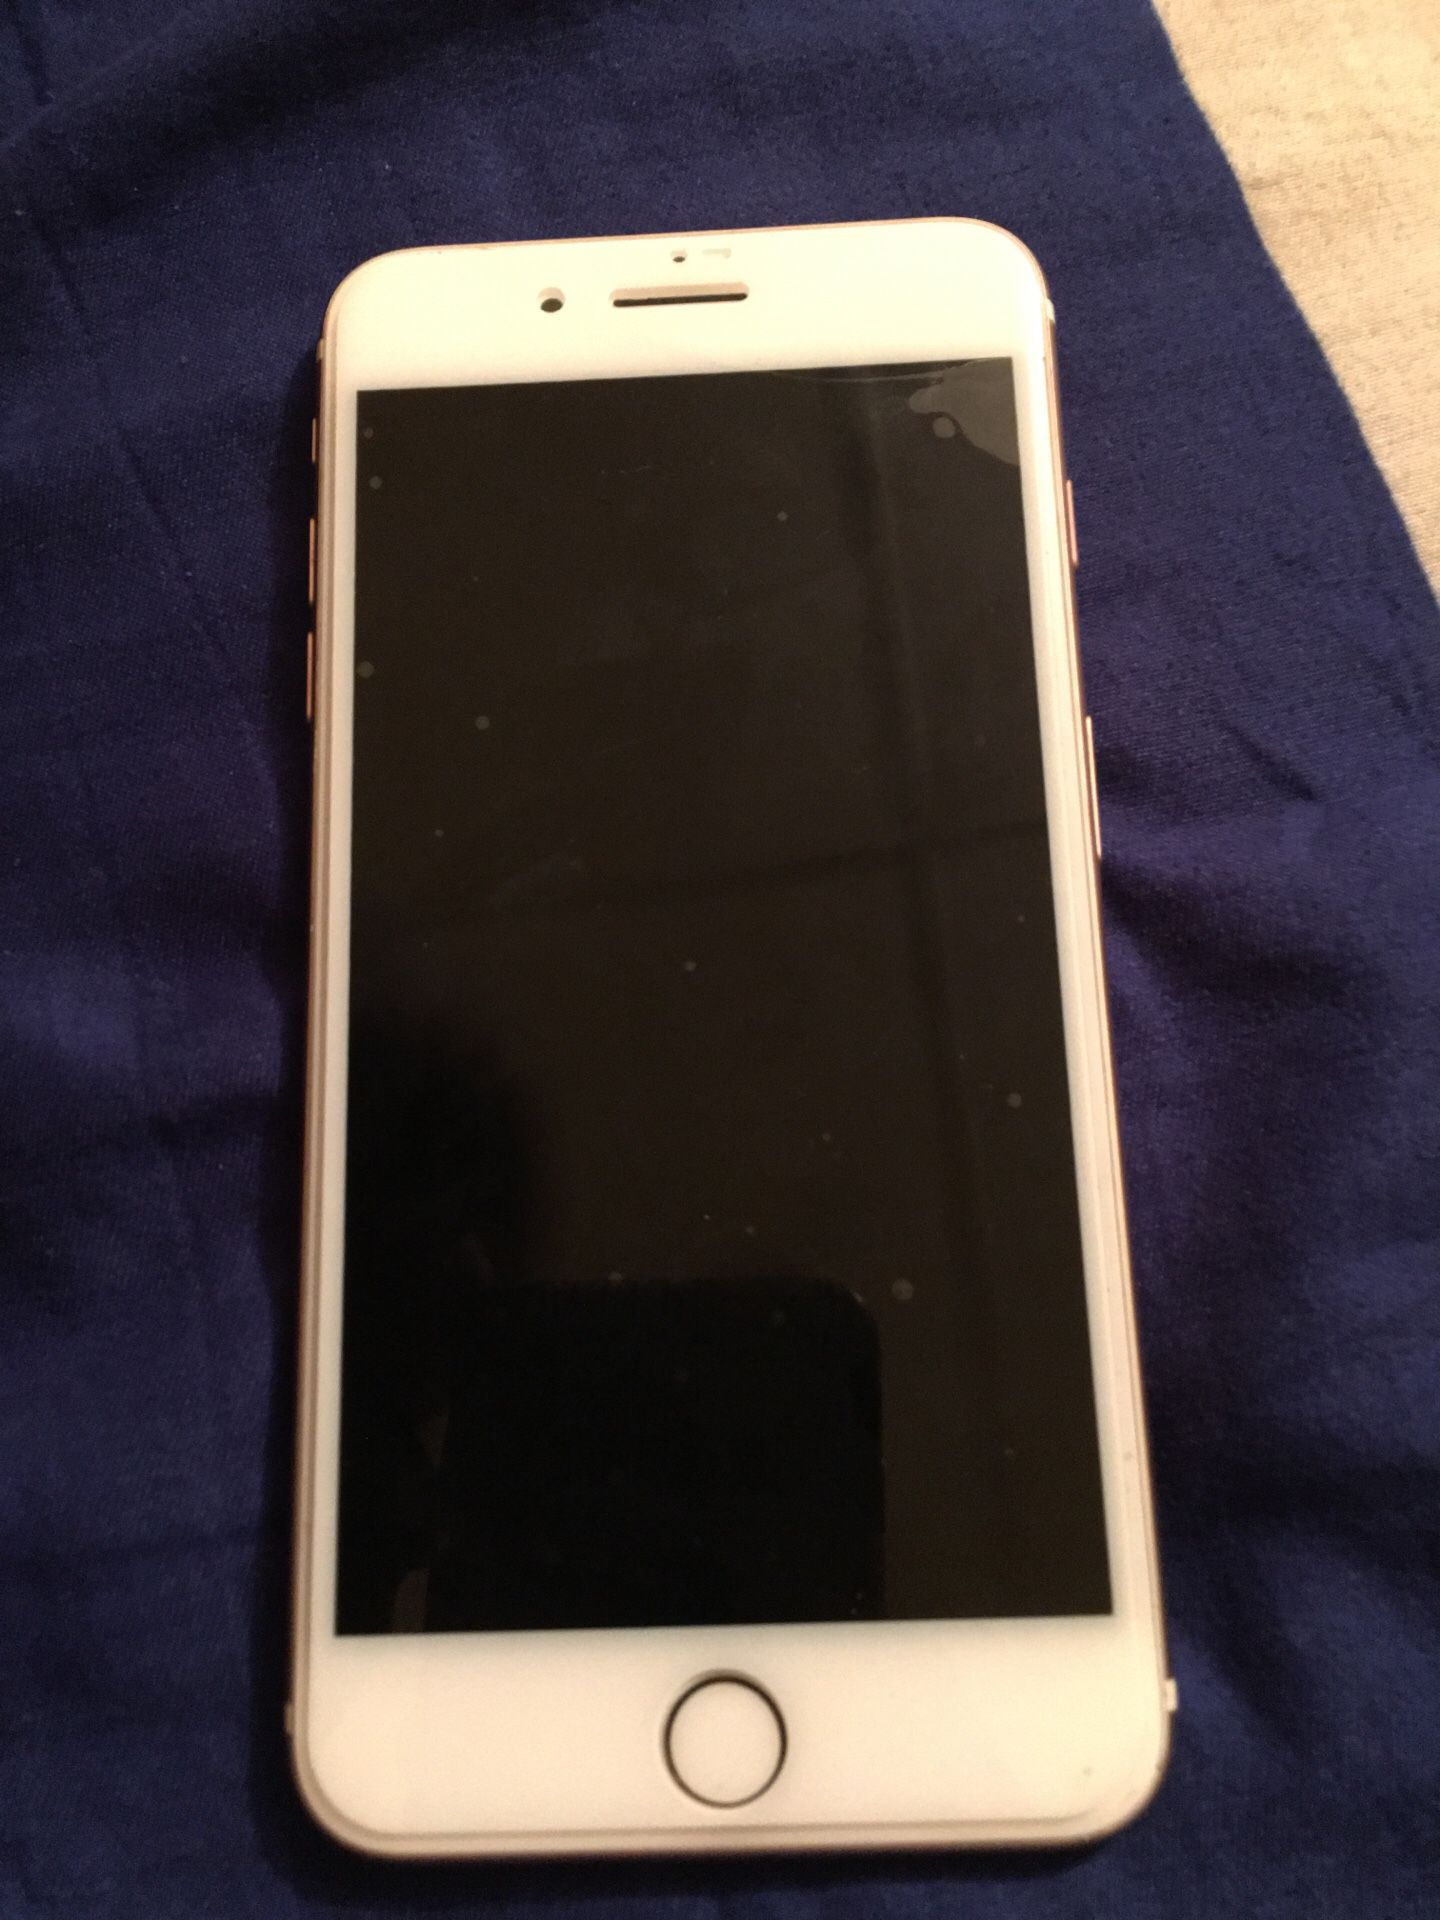 I got IPh1 7plus for sale dm for price {contact info removed}